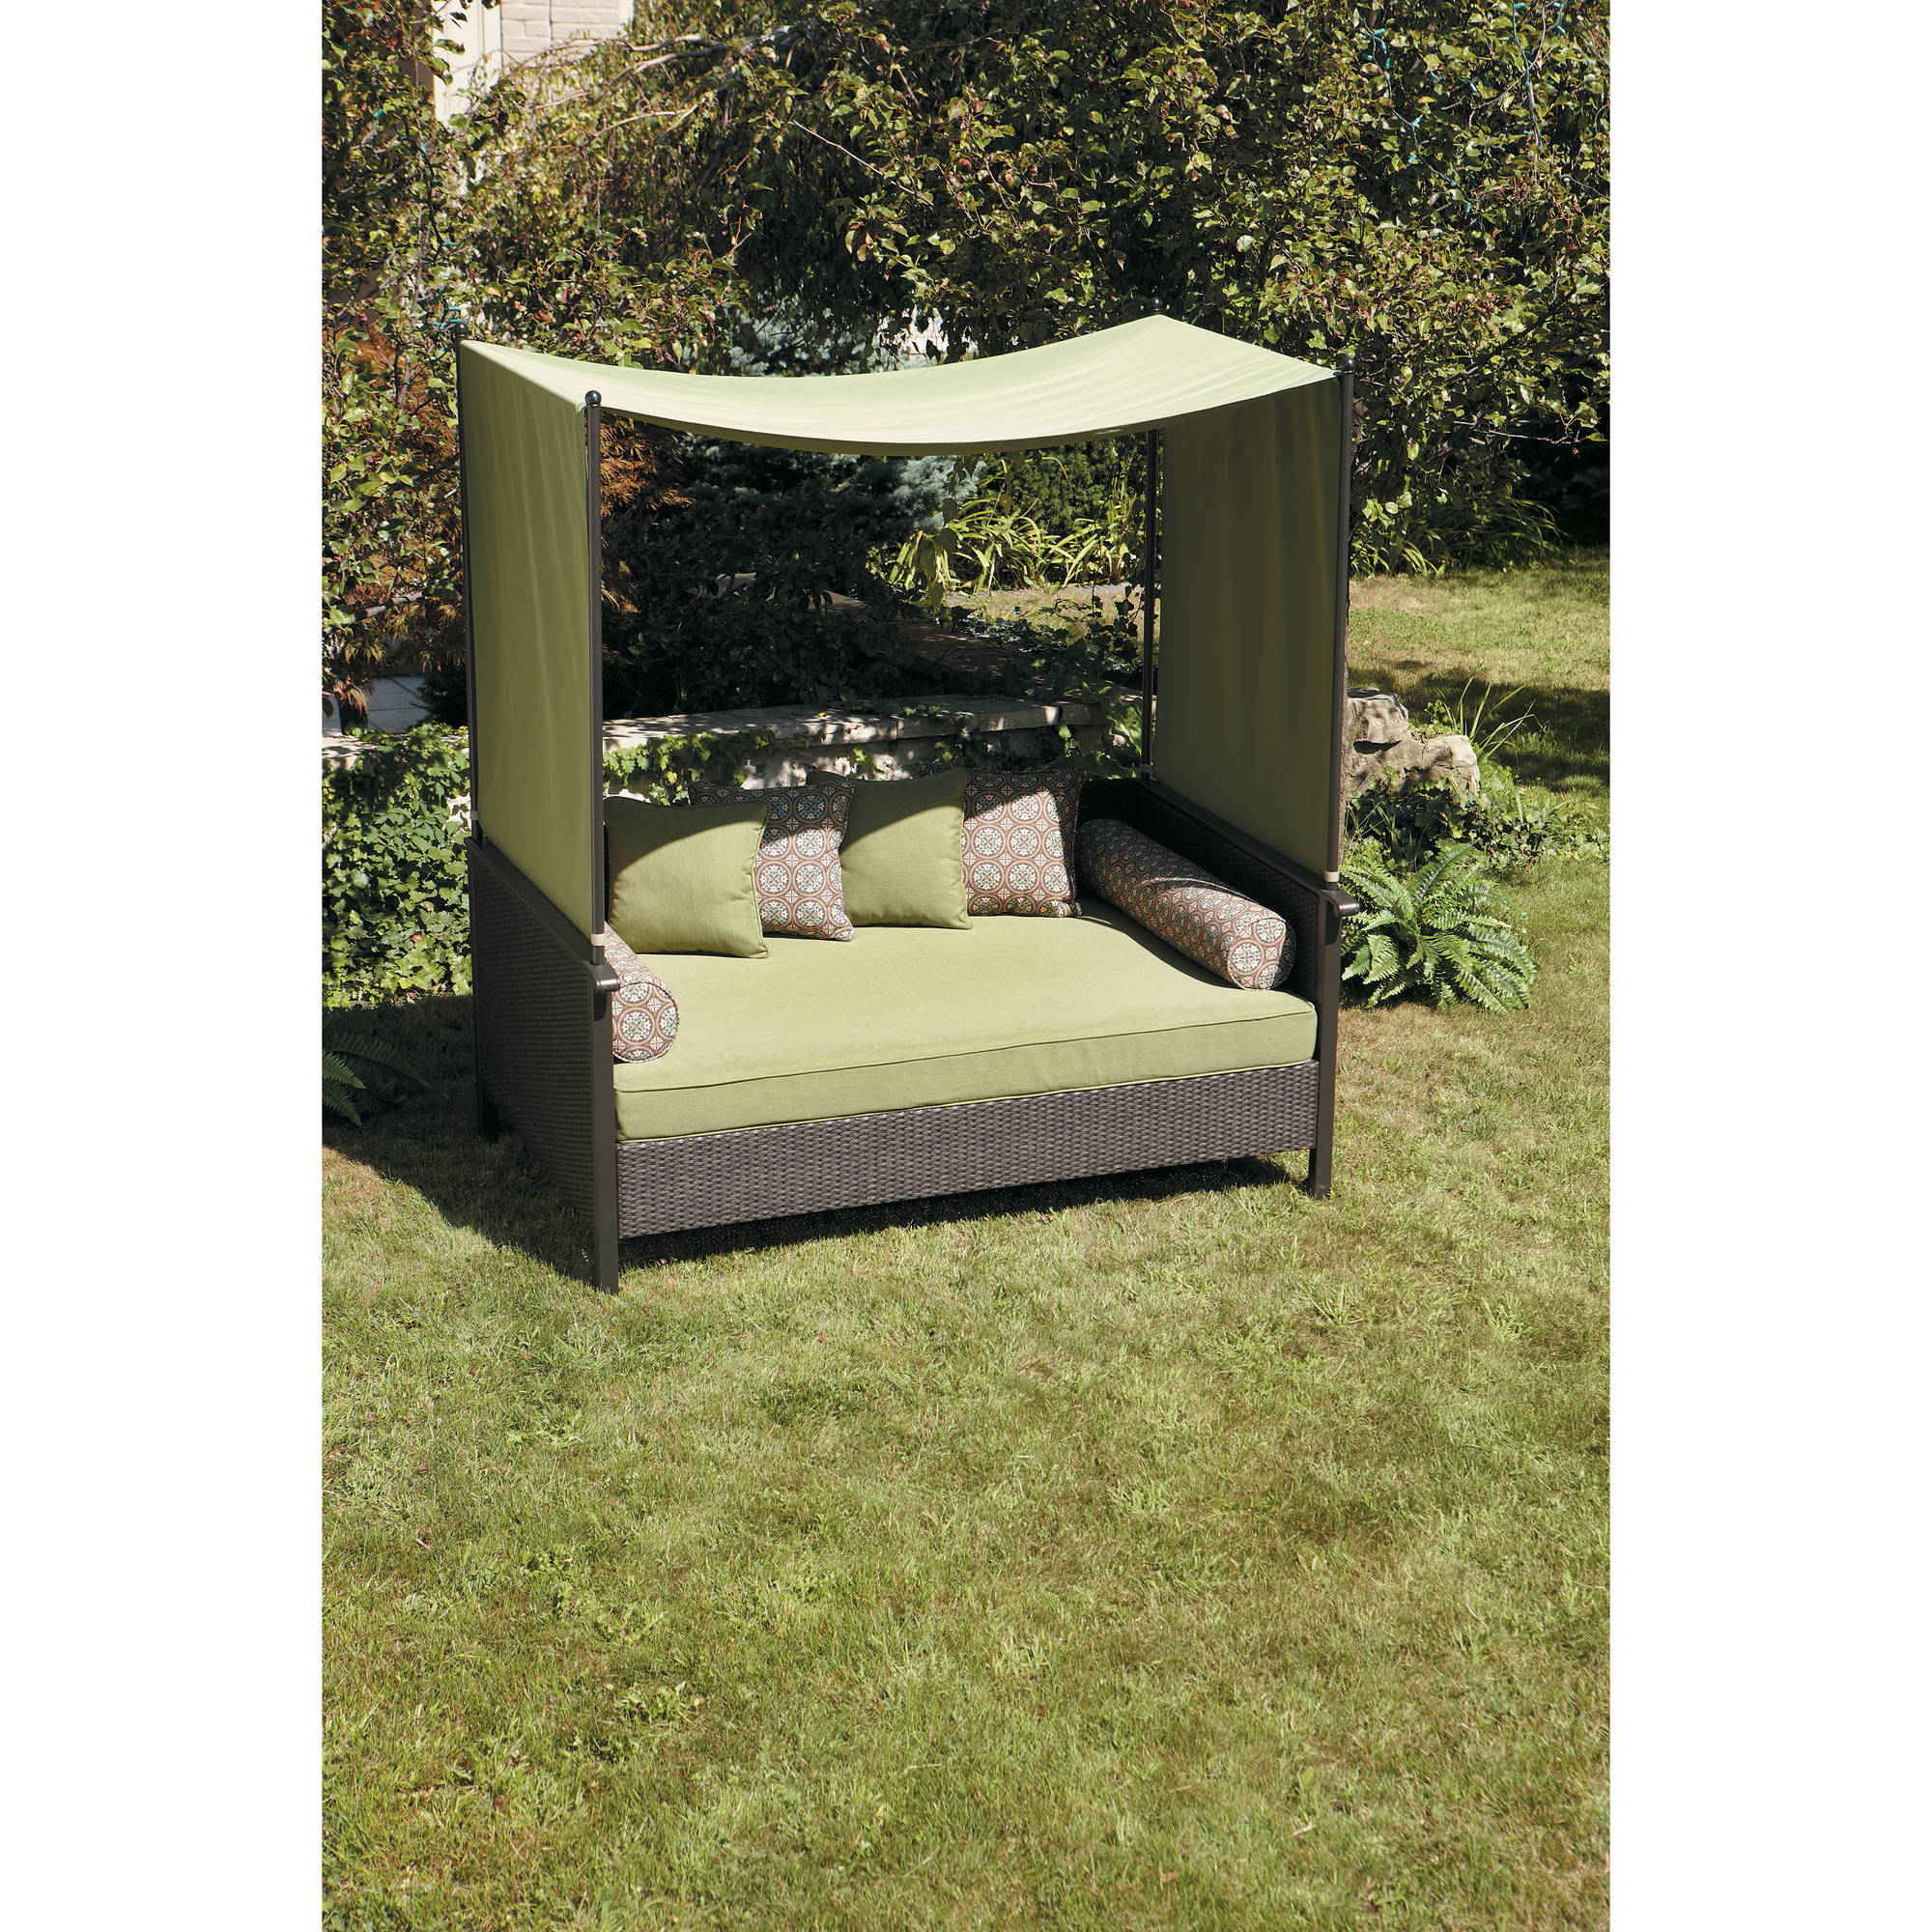 Better homes and gardens providence outdoor day bed ebay for Better homes and gardens bed in a bag